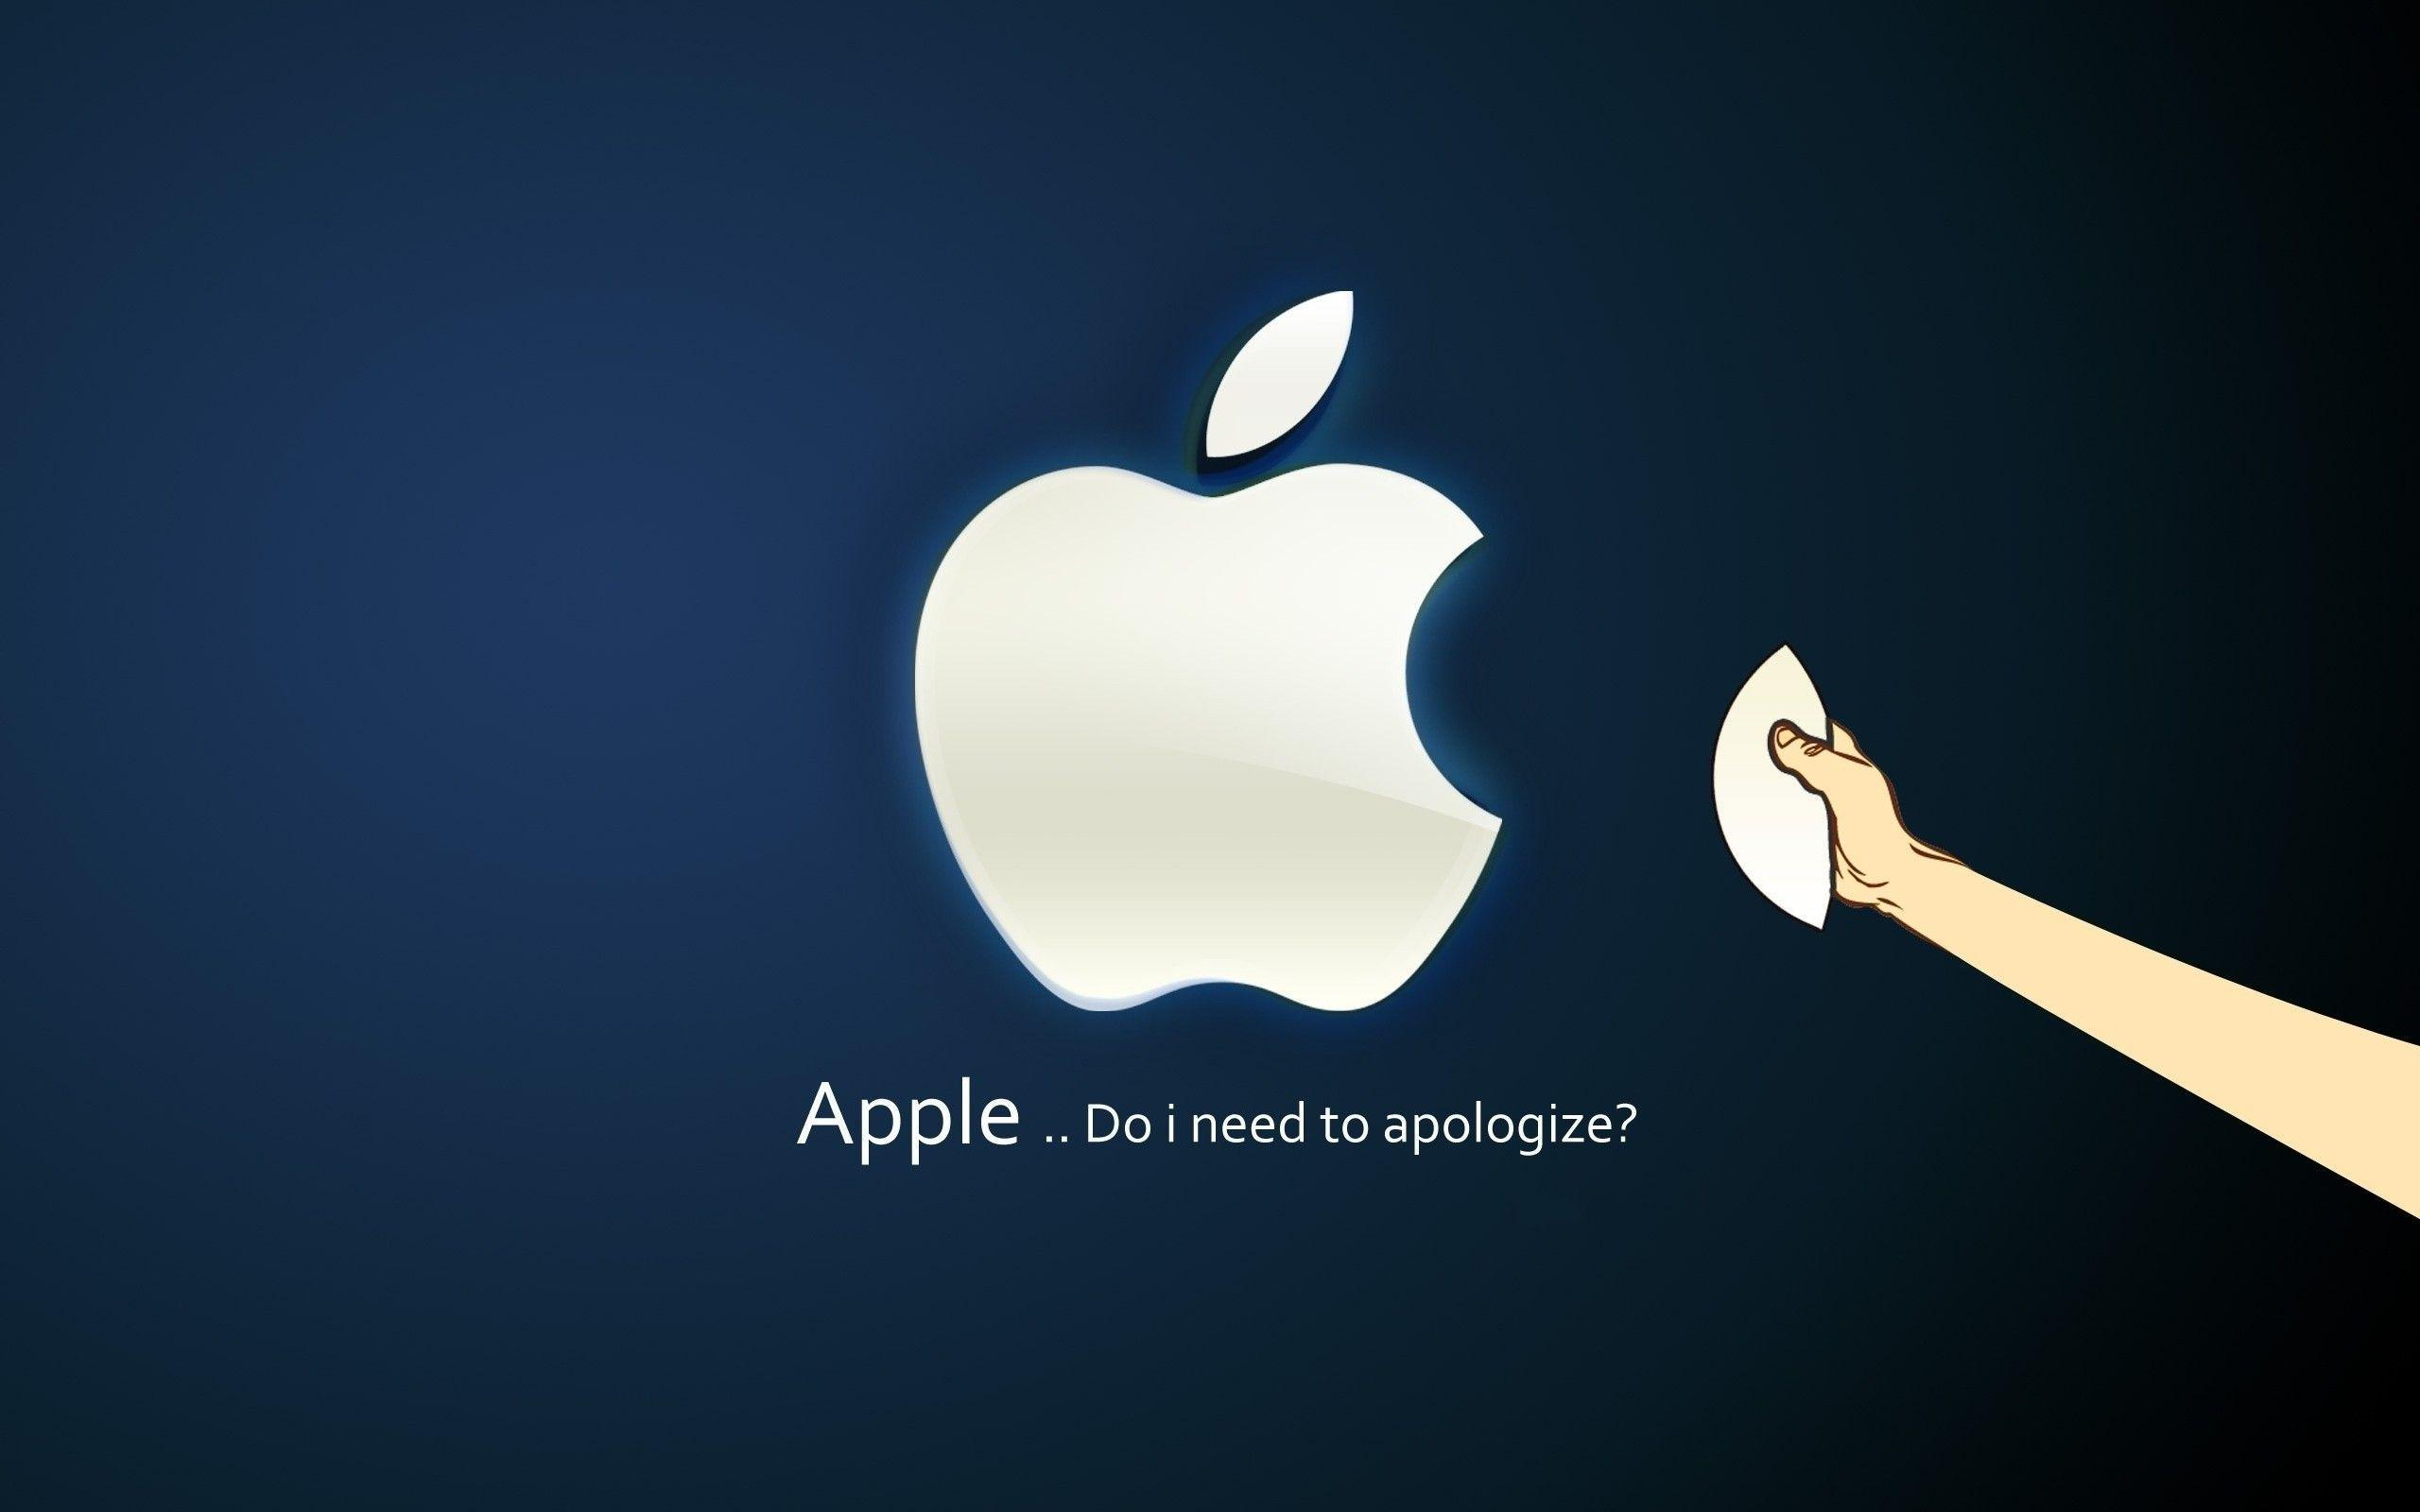 Funny Hd Wallpapers For Mac Wallpaper Cave